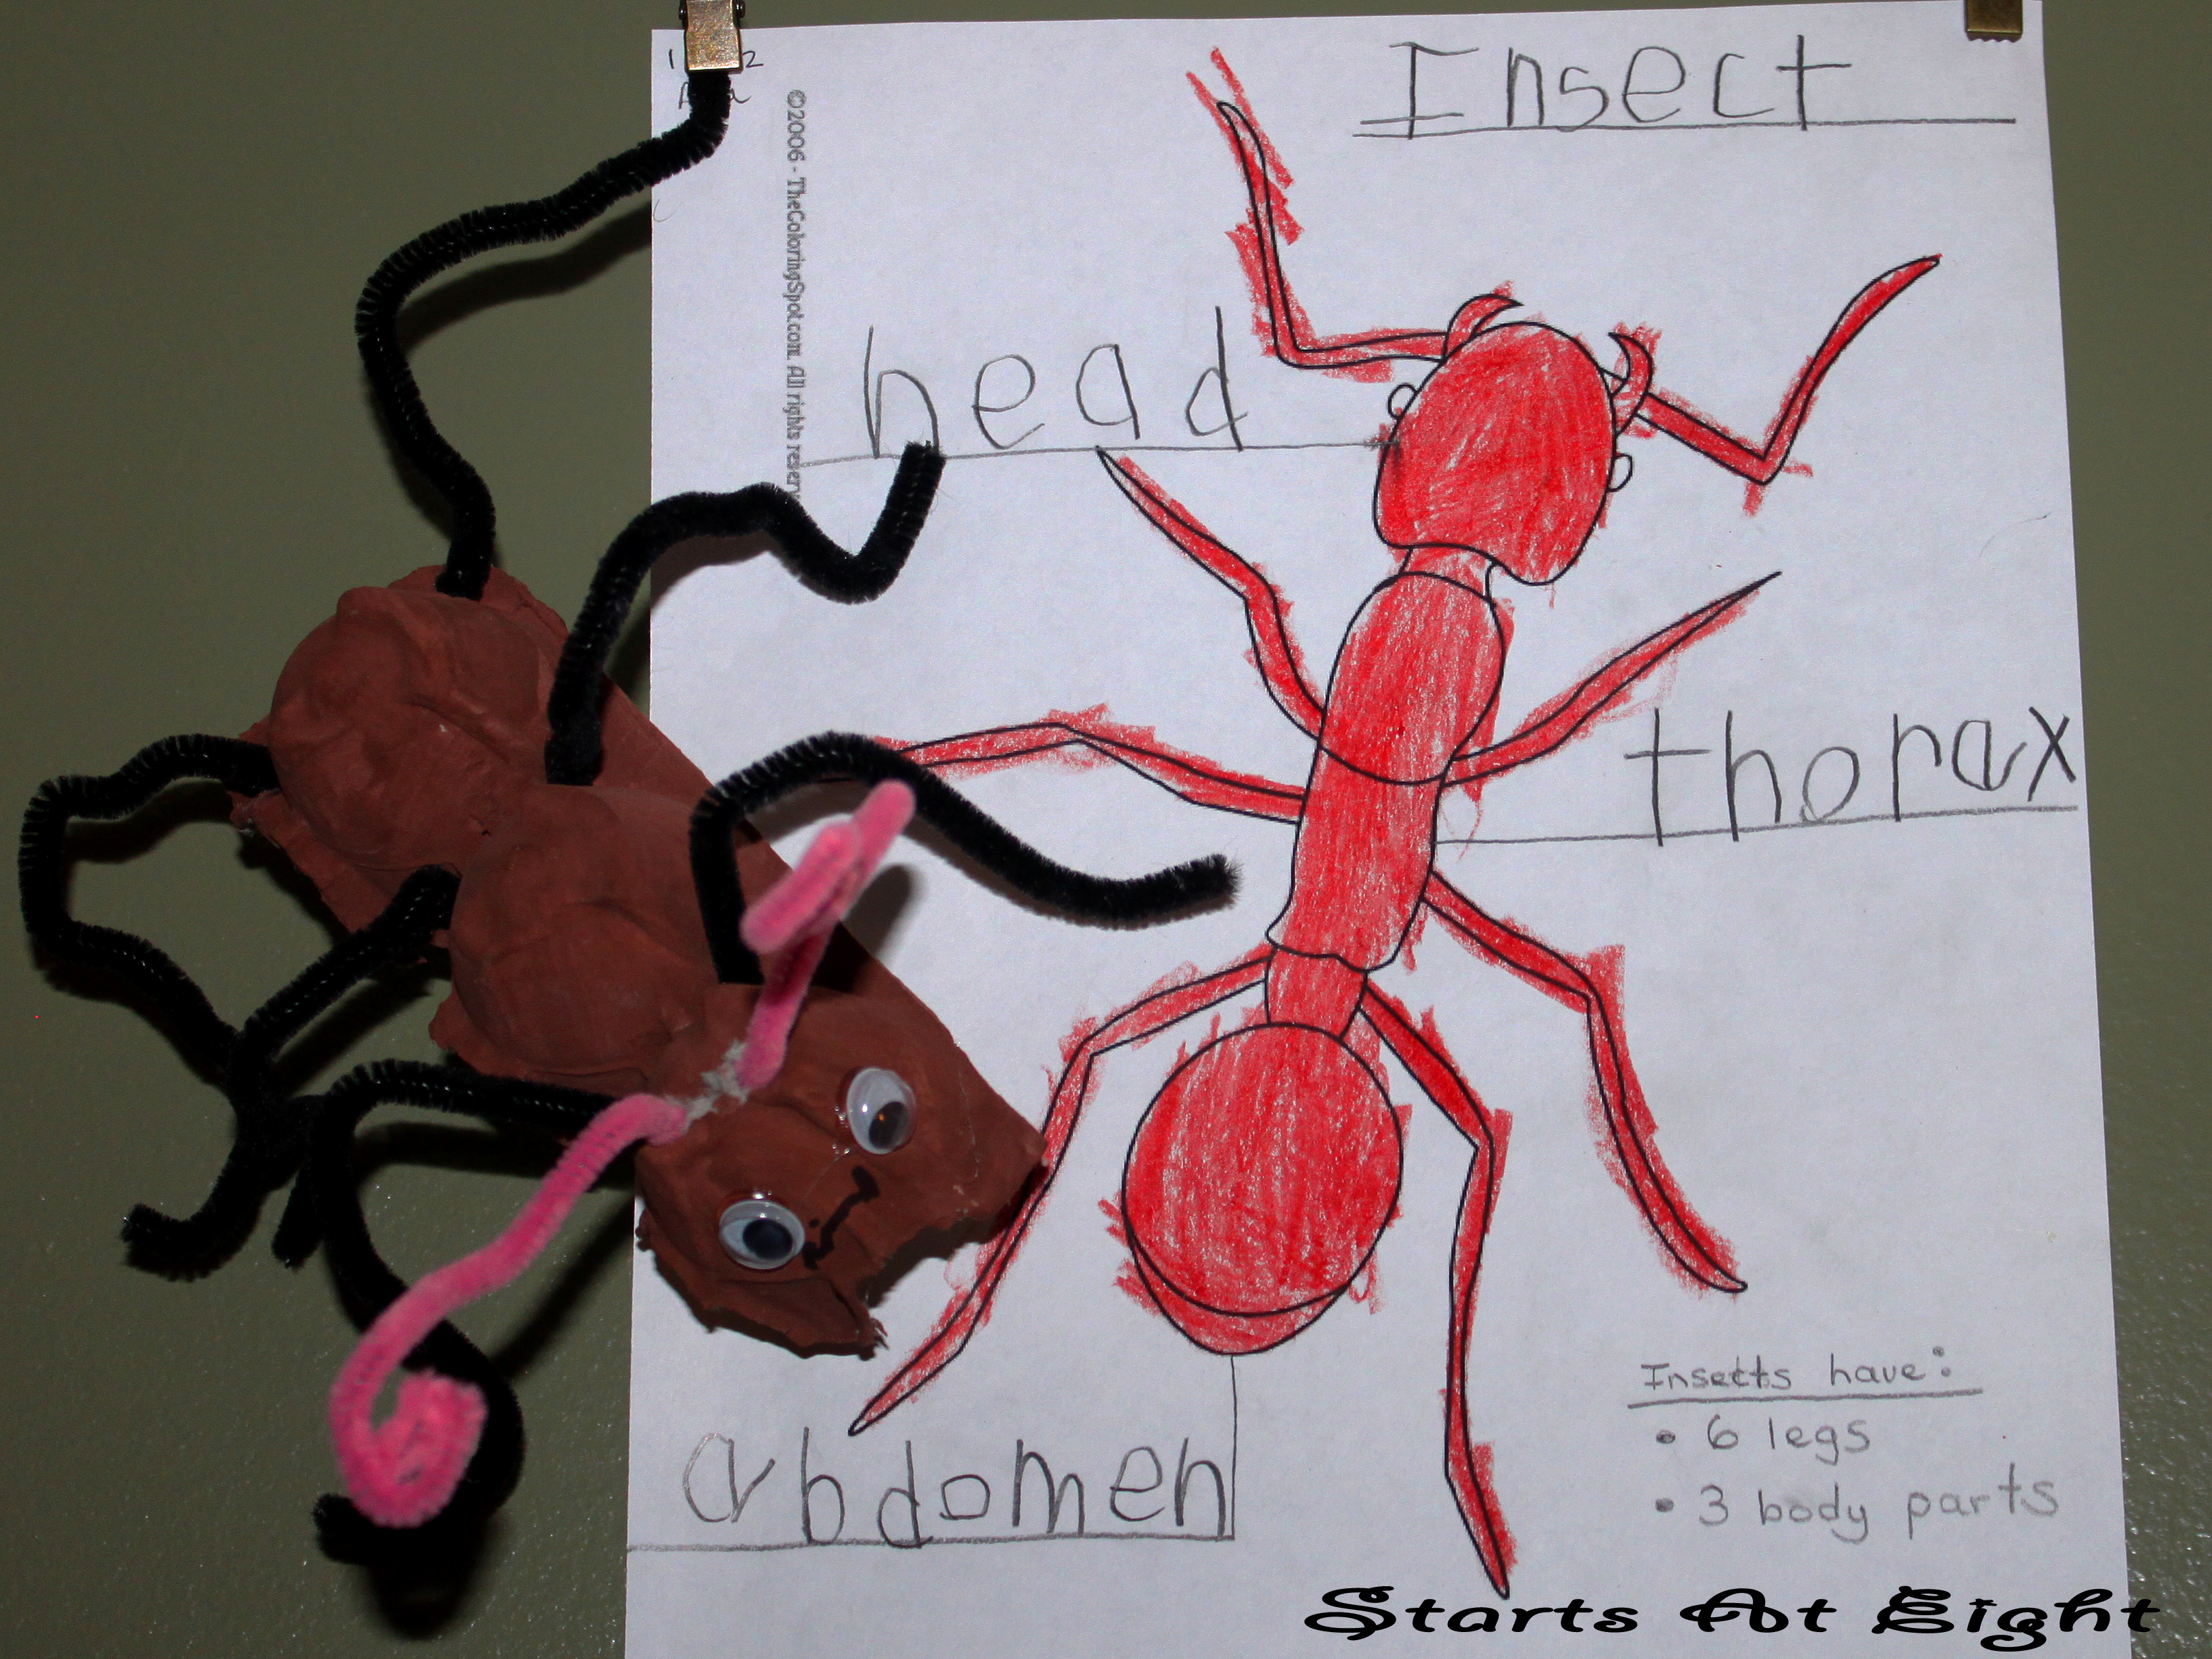 What Is An Insect